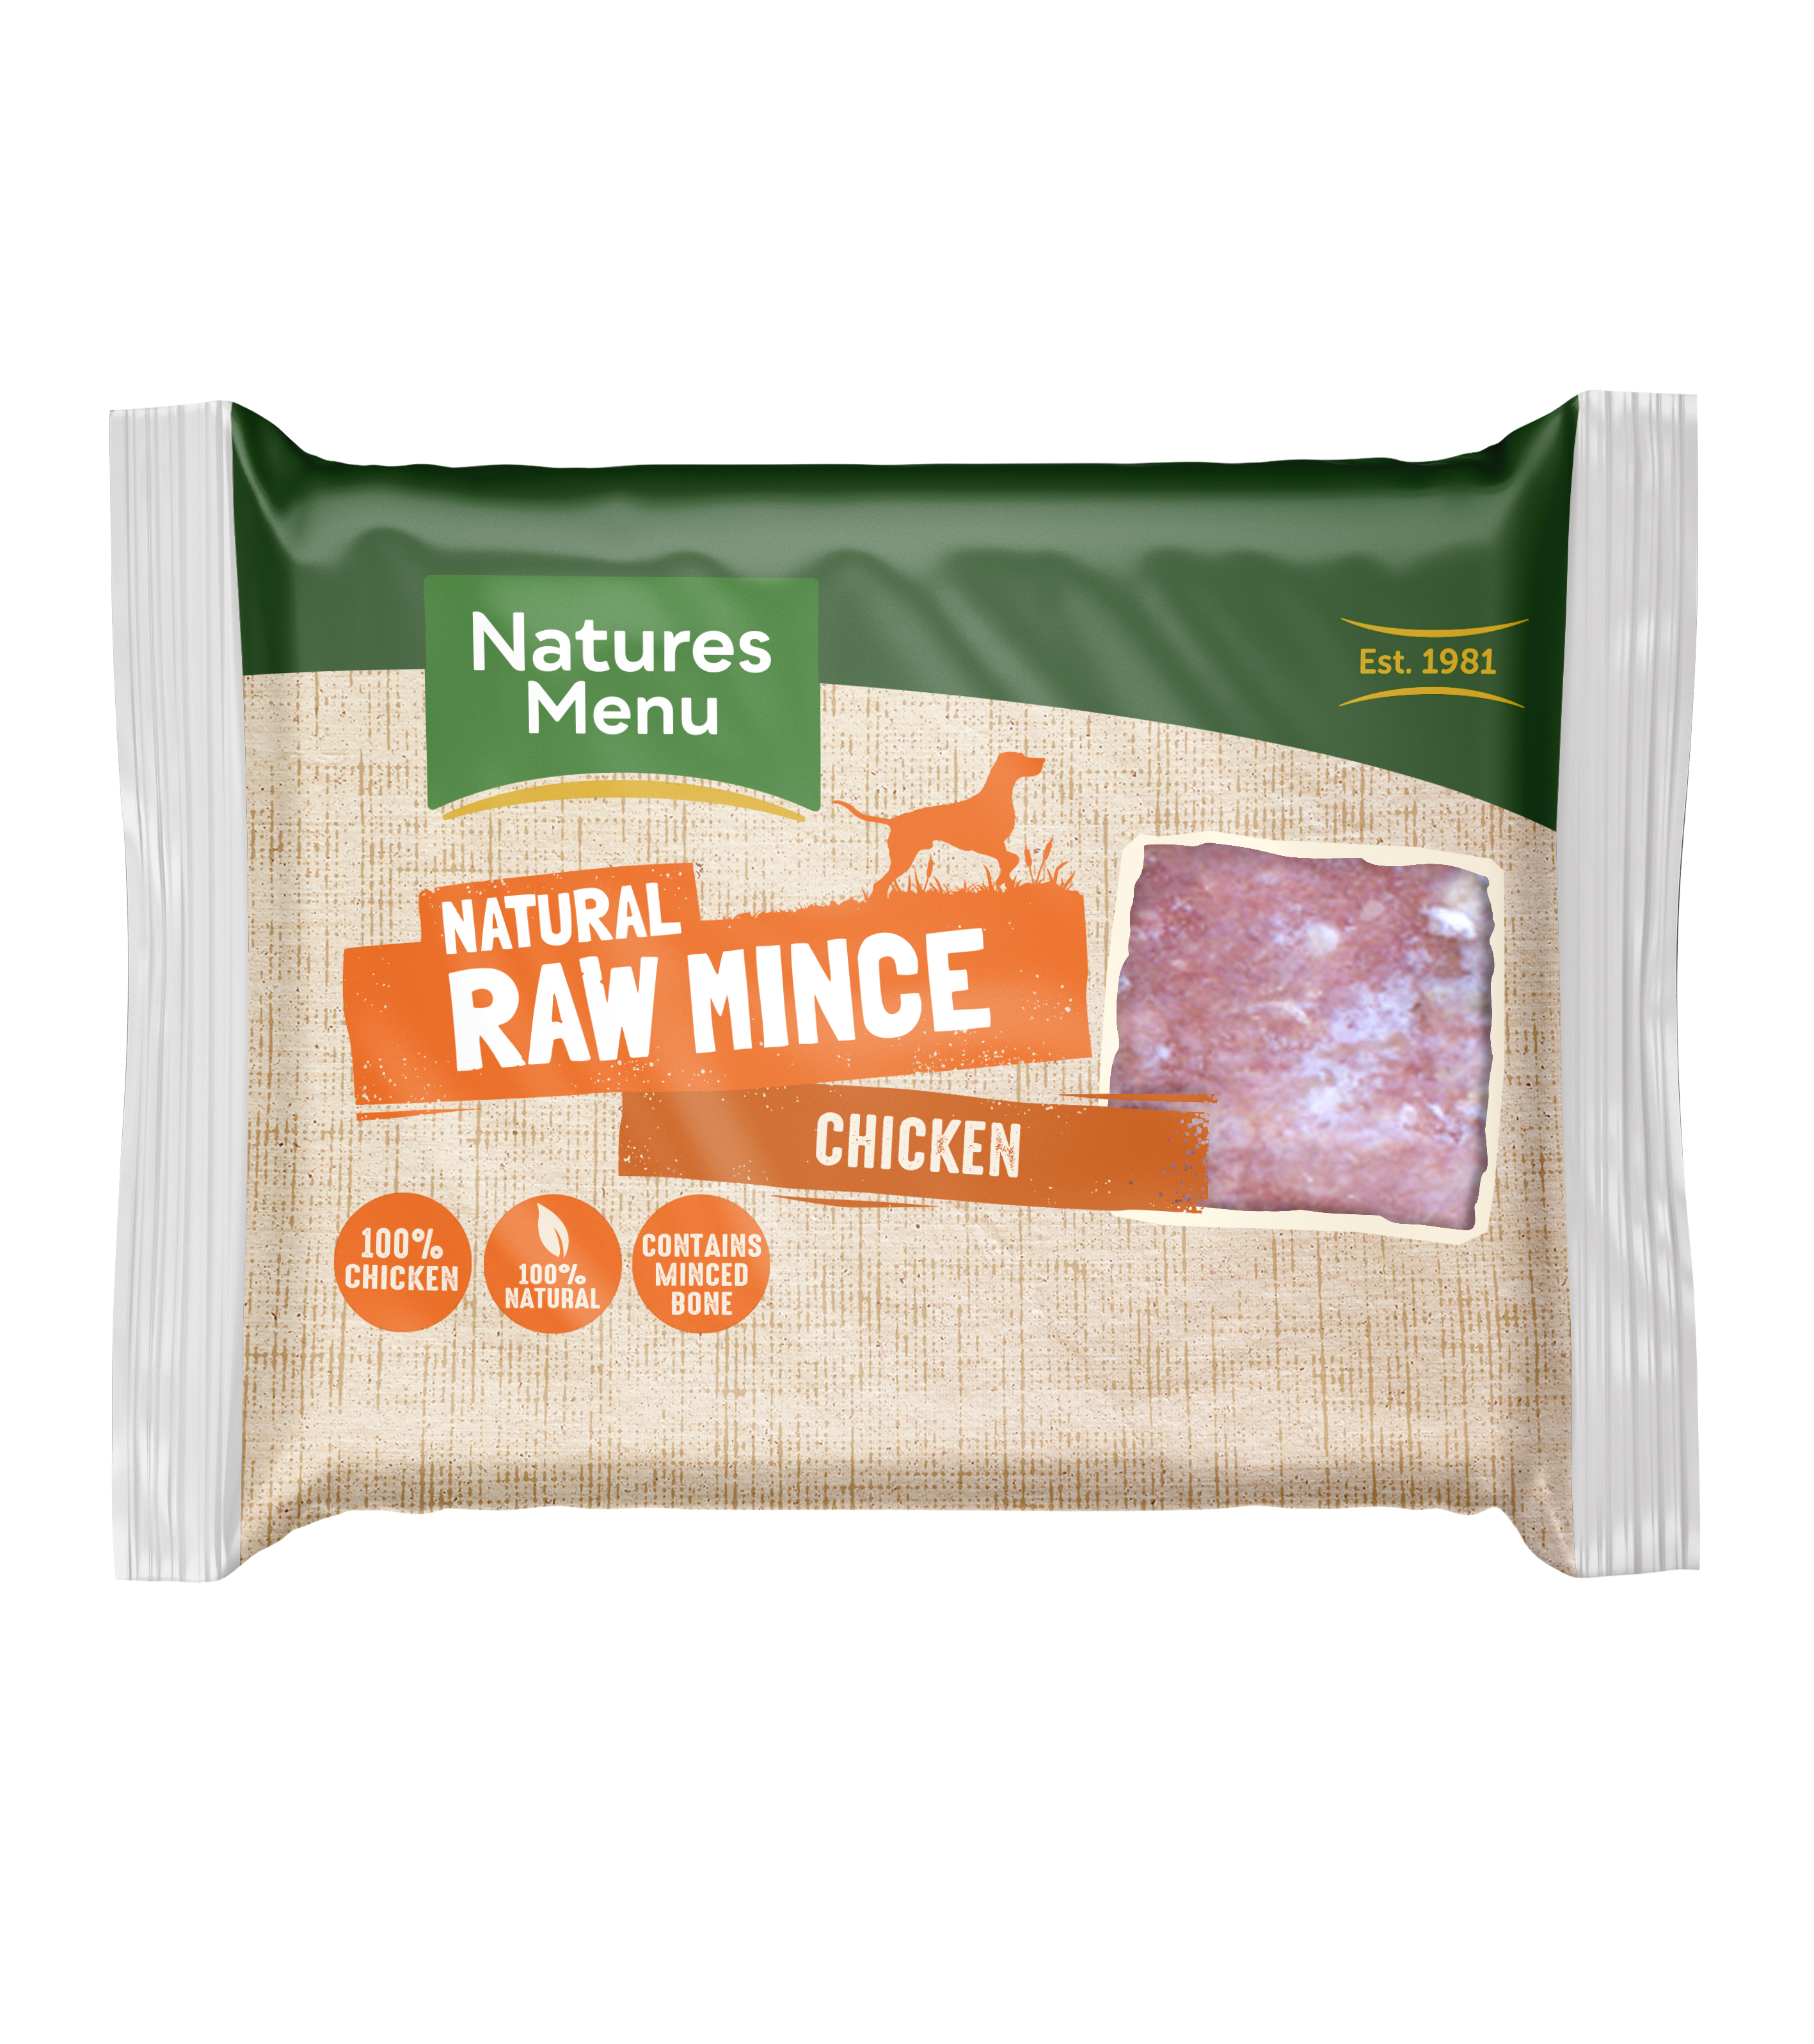 Natures Menu Raw Mince Chicken 400g Block Front of pack